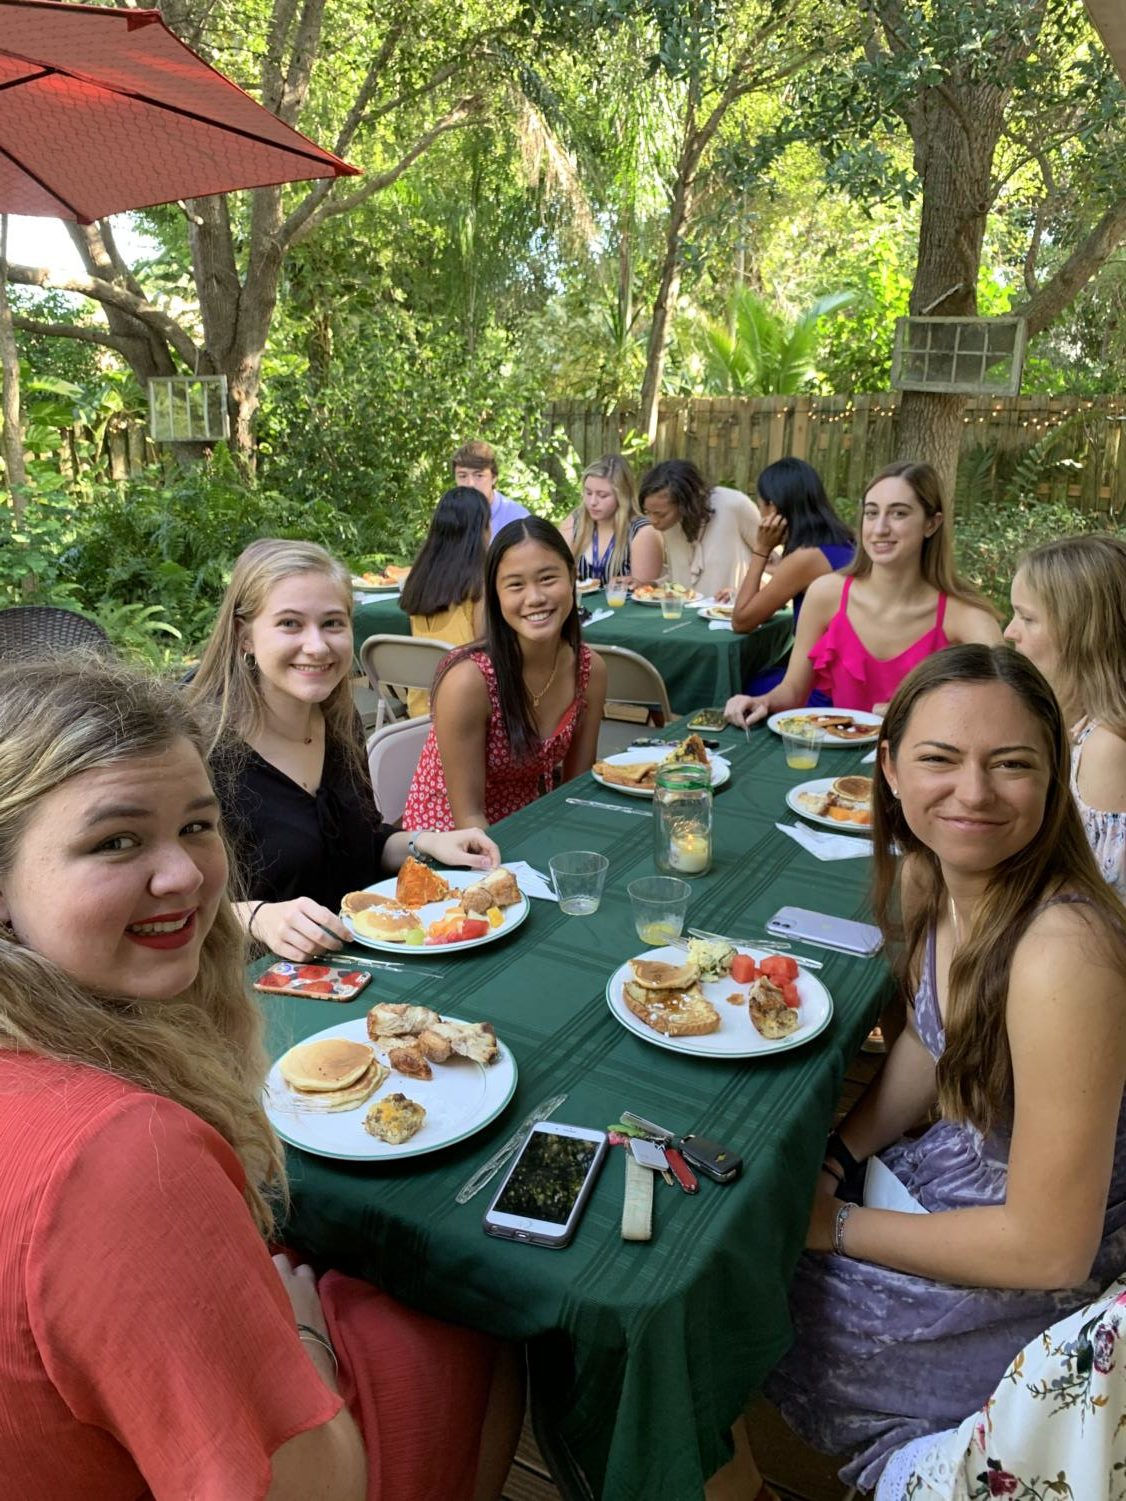 A+group+of+senior+girls+have+a+relaxing+morning+as+they+take+a+break+from+school+to+spend+quality+time+together.